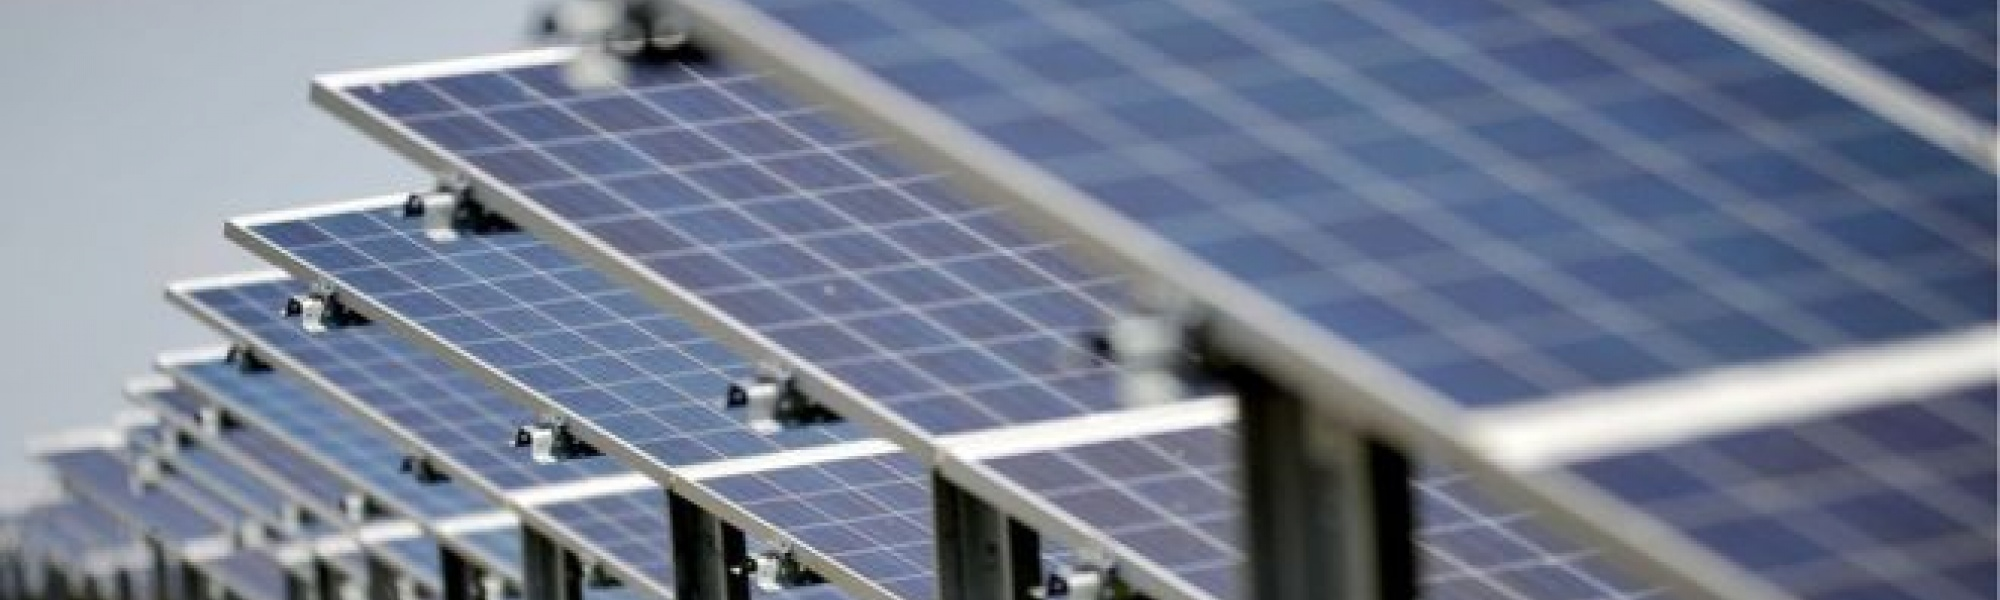 The NI Water solar farm will be made up of 27,000 solar panels